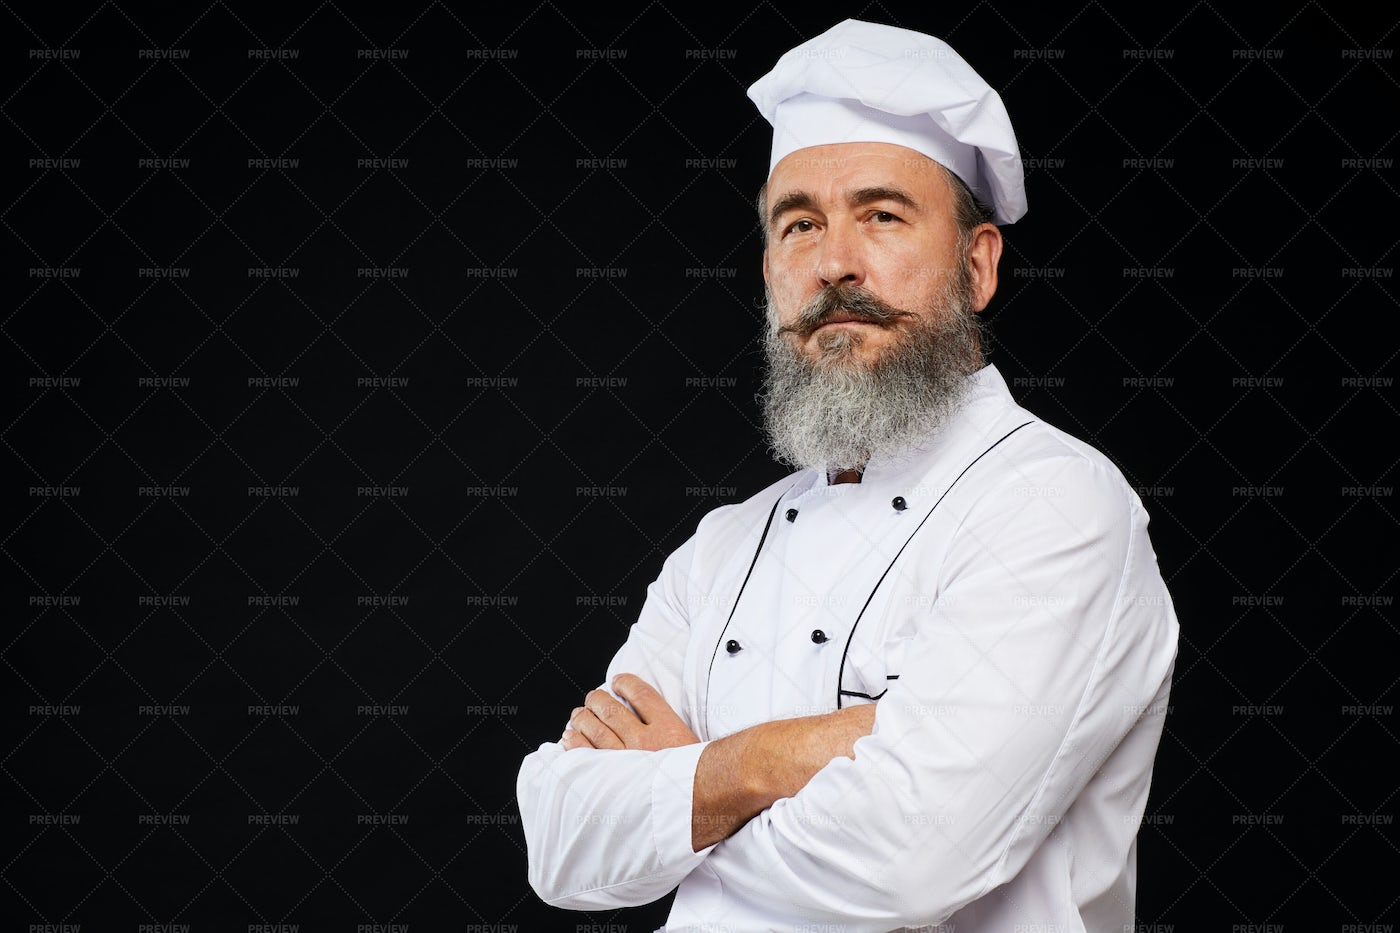 Professional Chef On Black: Stock Photos